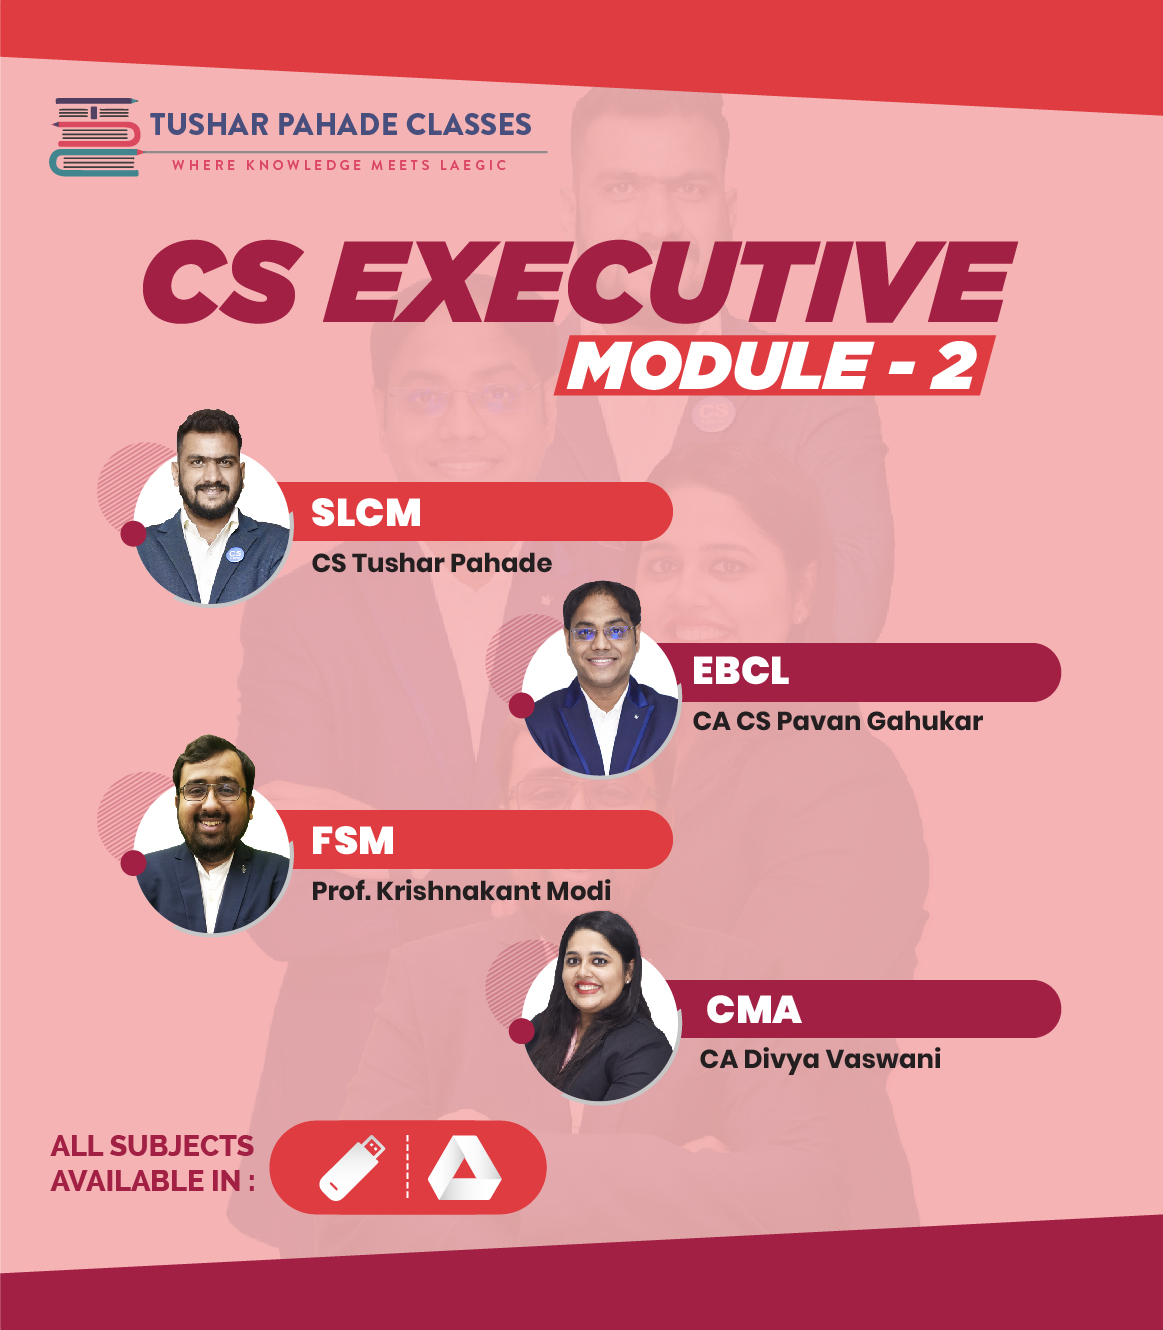 CS Executive Module II pendrive classes and study msterial